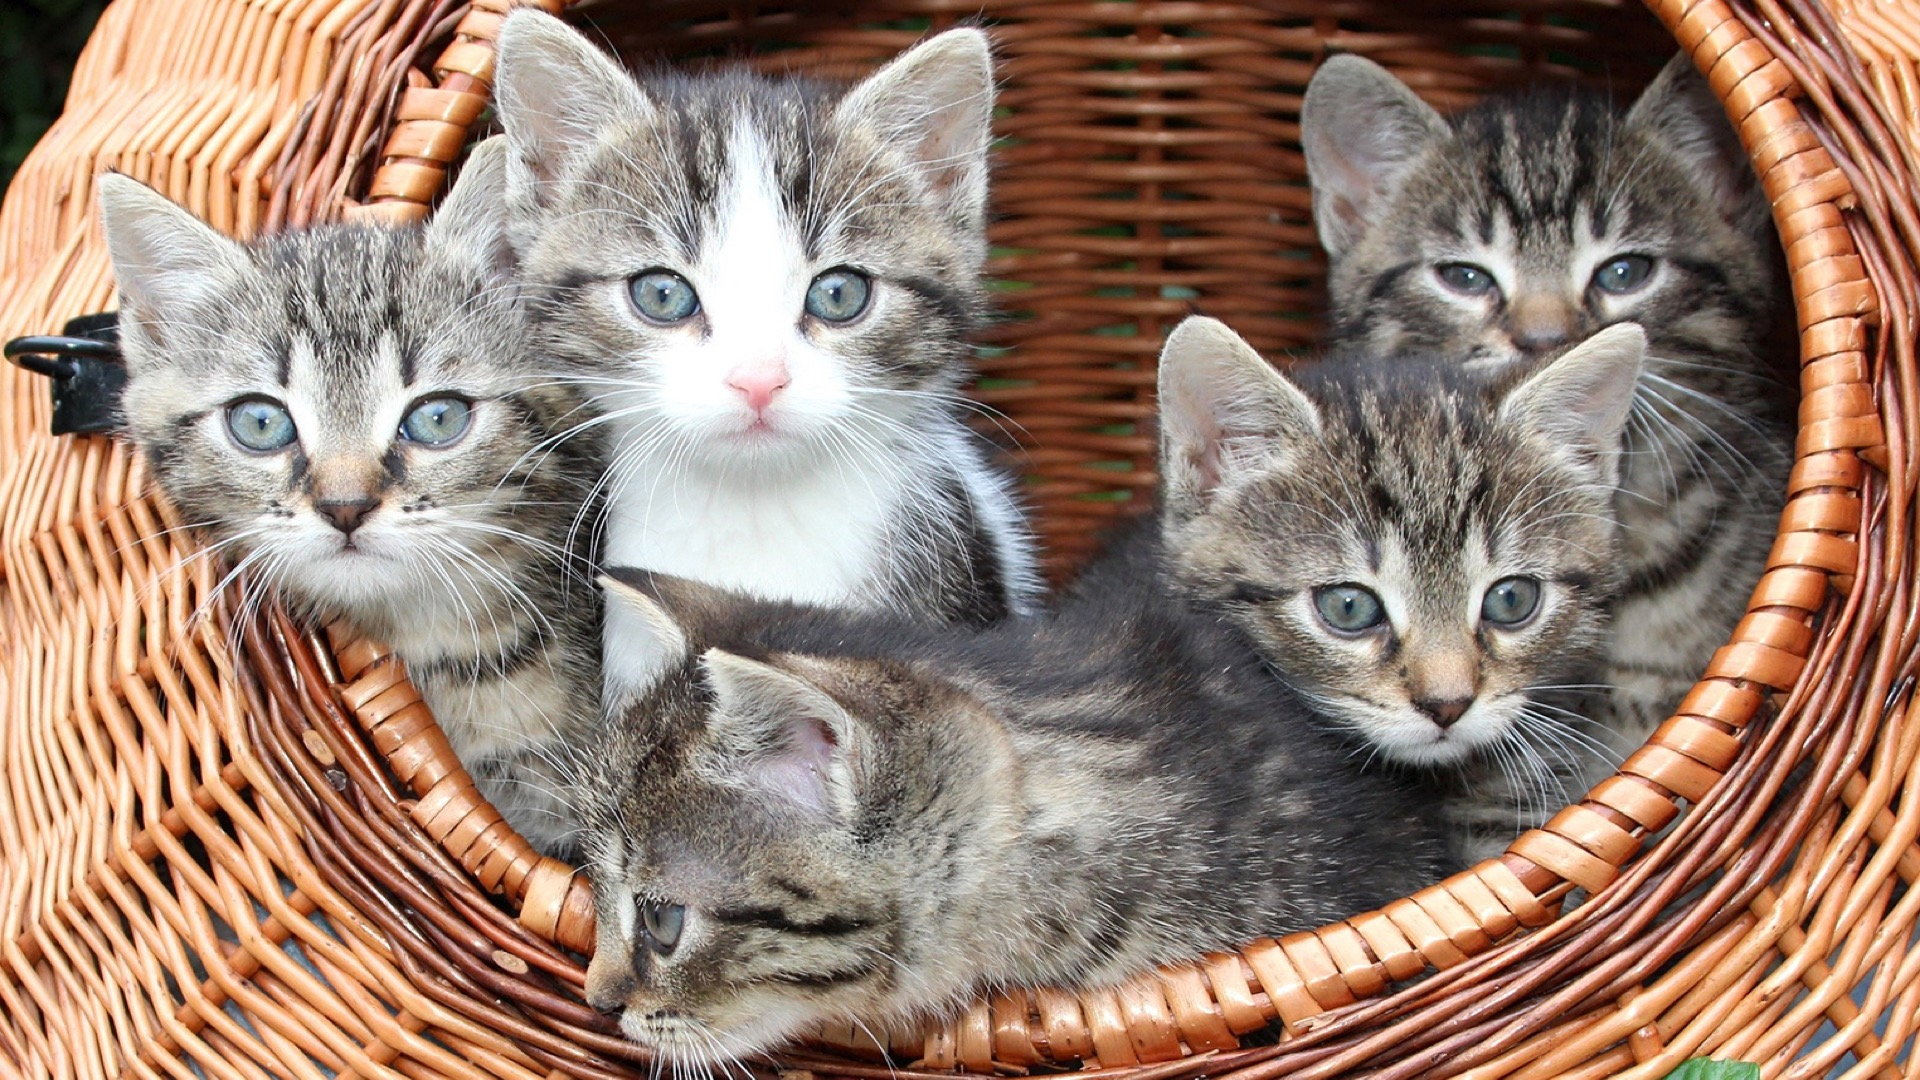 5 kittens in basket